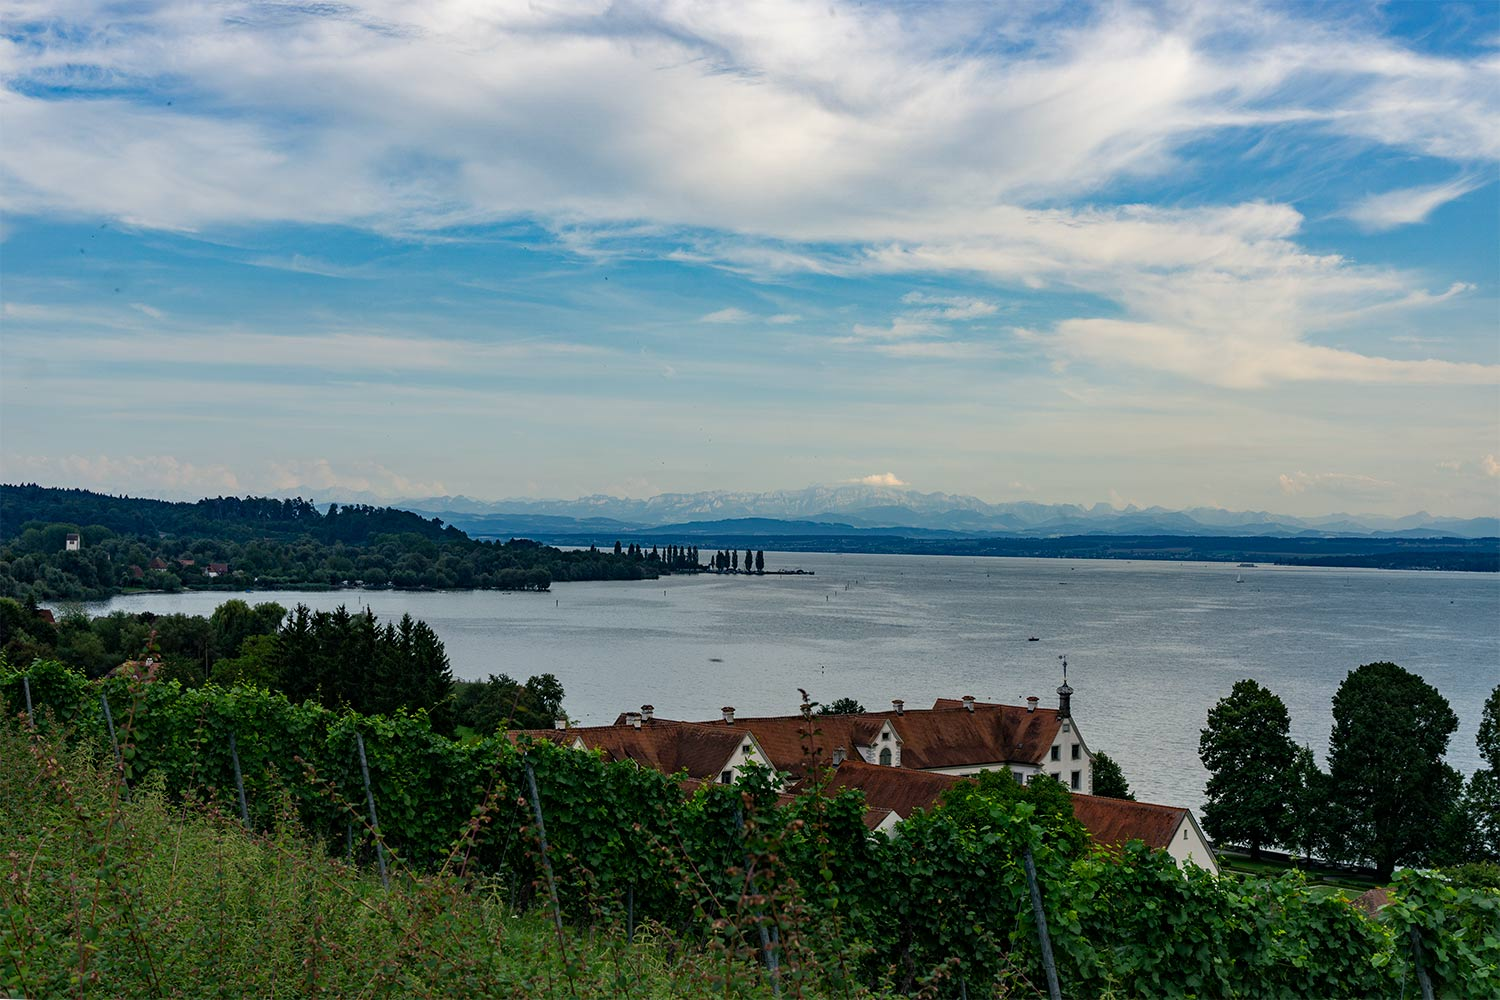 A view of Lake Konstanz with mountains in the background.